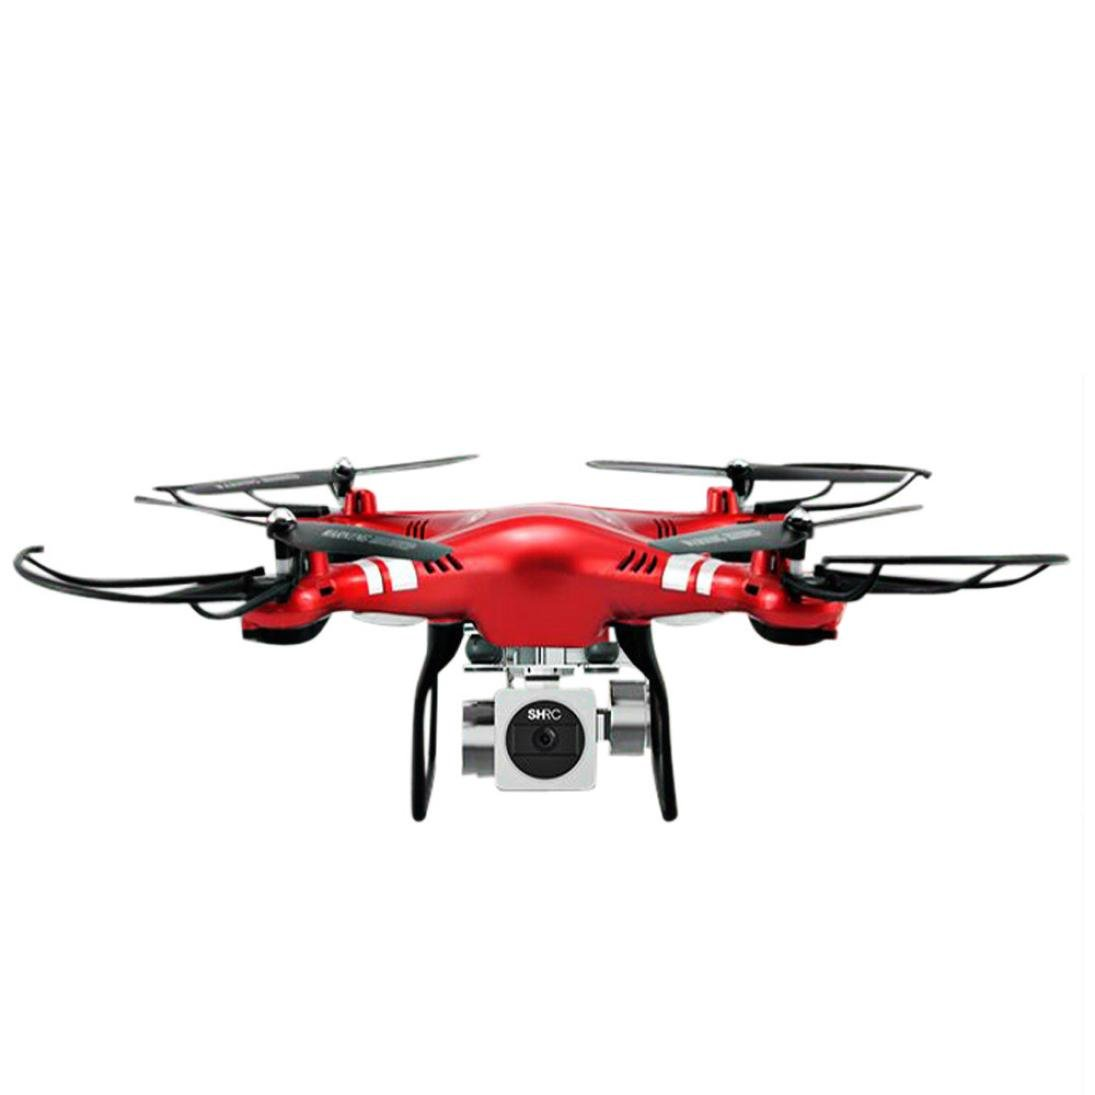 Ruhiku GW RC Drone FPV Wifi RC Quadcopter 2.4GHz 6-Axis Gyro Remote Control Drone with 1080P Wide Angle Lens 270 Degree Rotating HD Camera Drone Gift (Red)